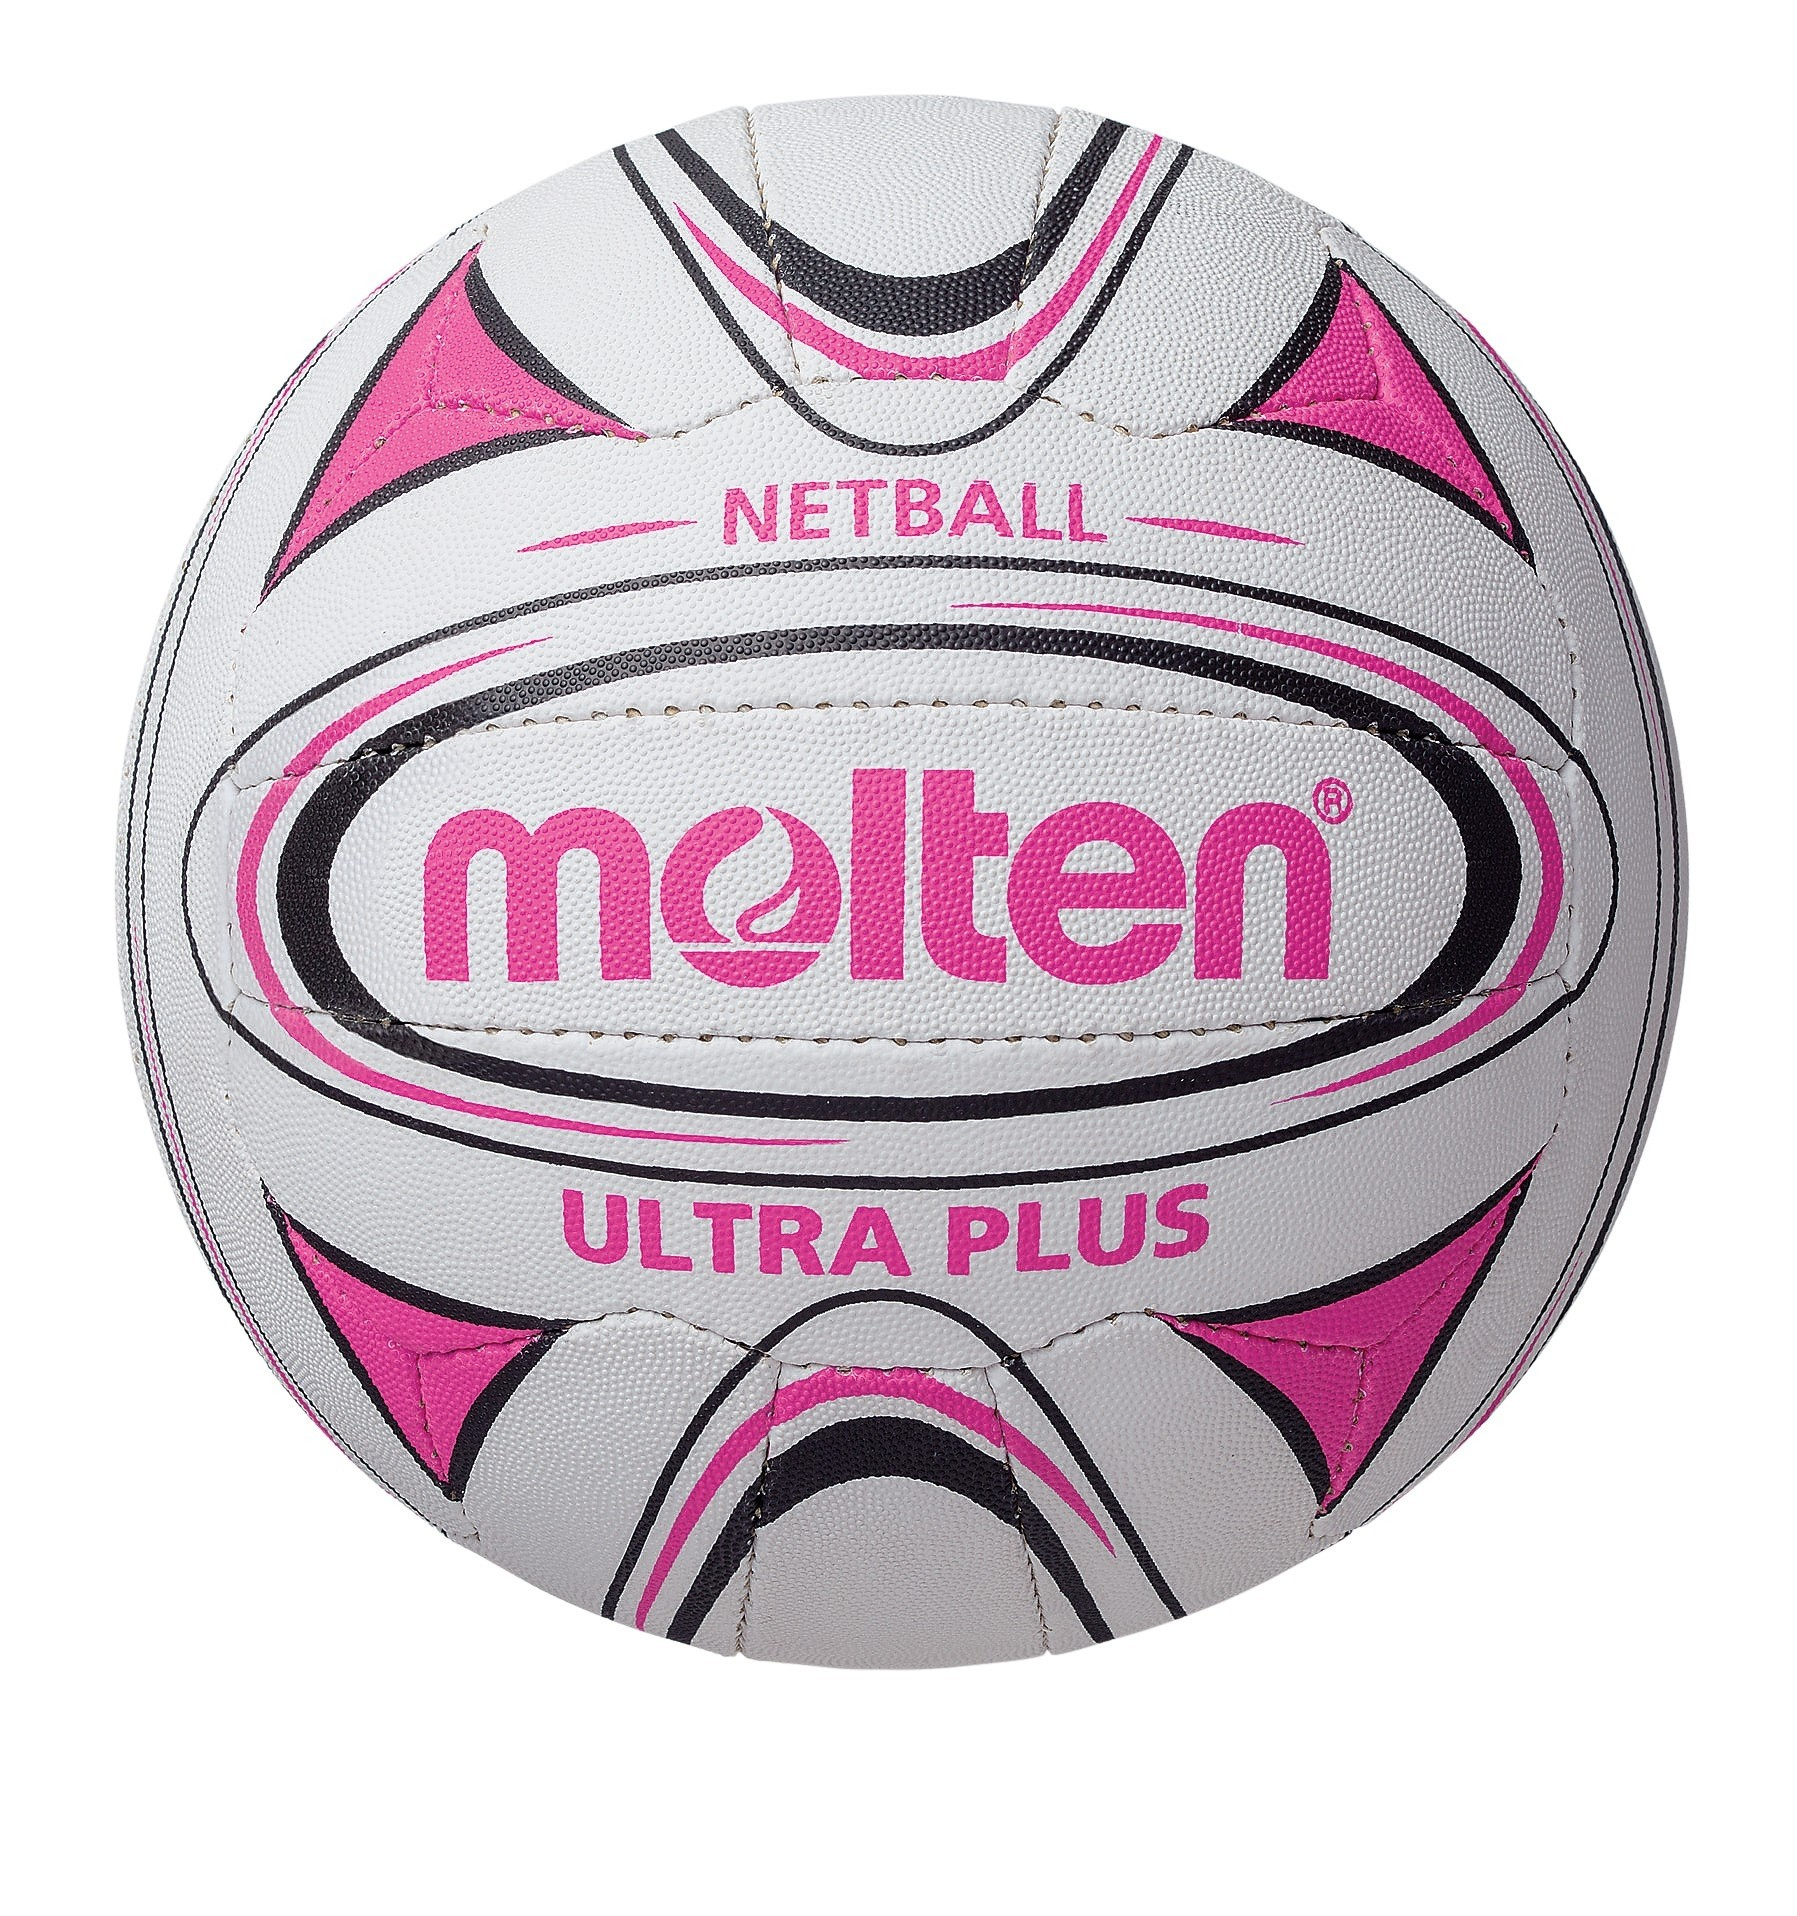 2018 Molten Ultra Plus Match Netball - White/Black/Pink